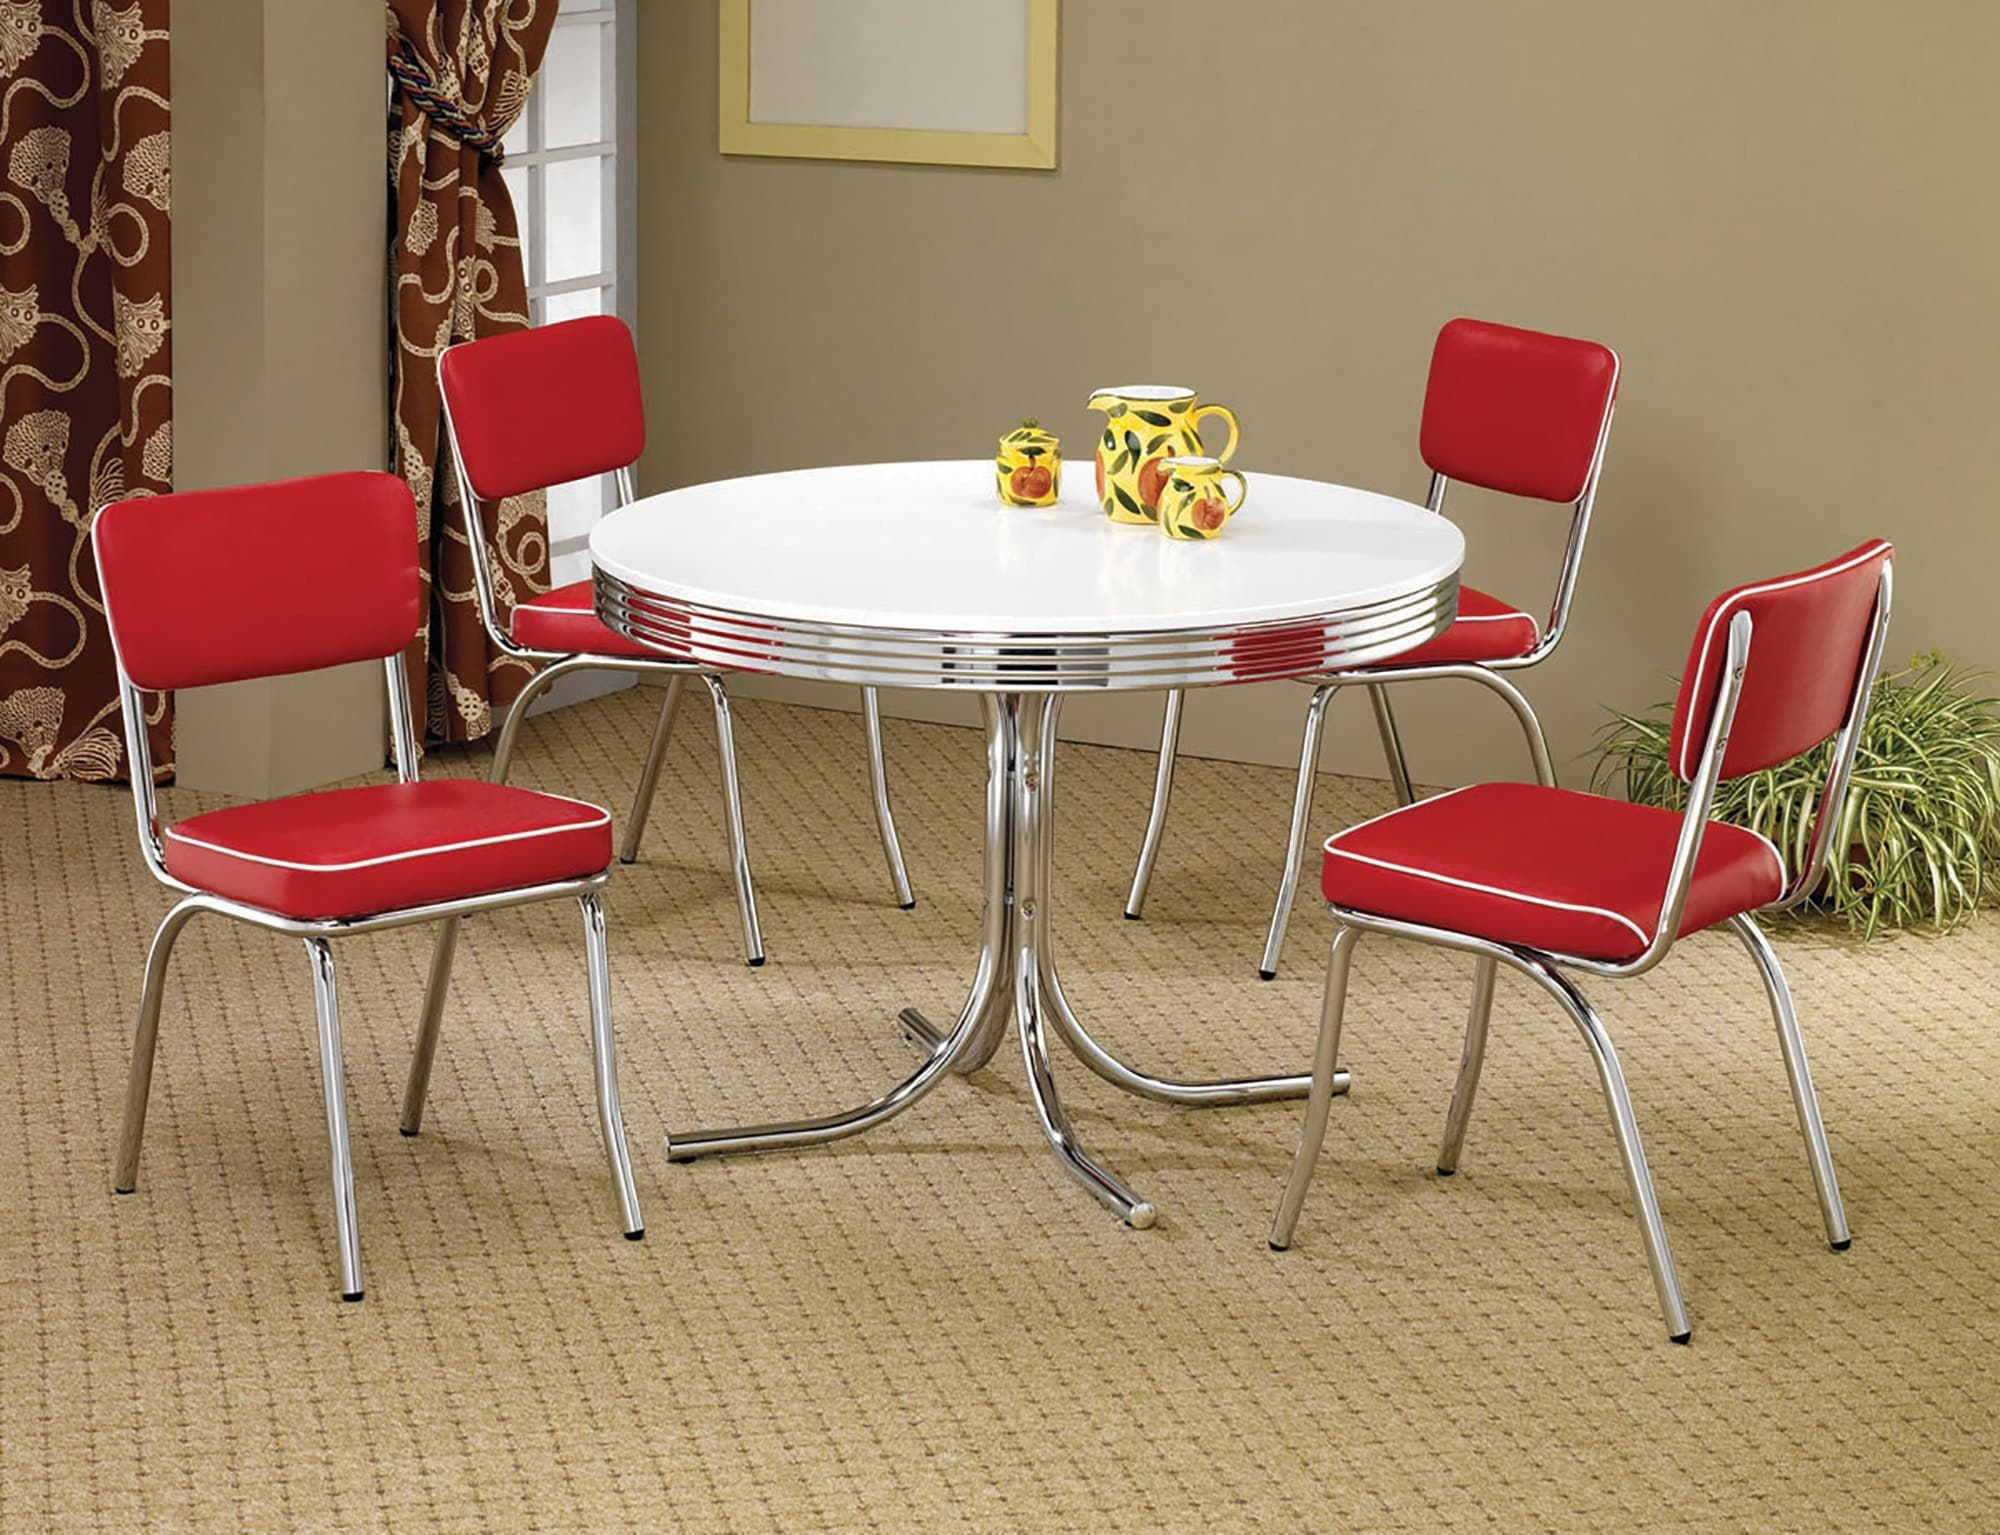 Retro Round Dining Table Set